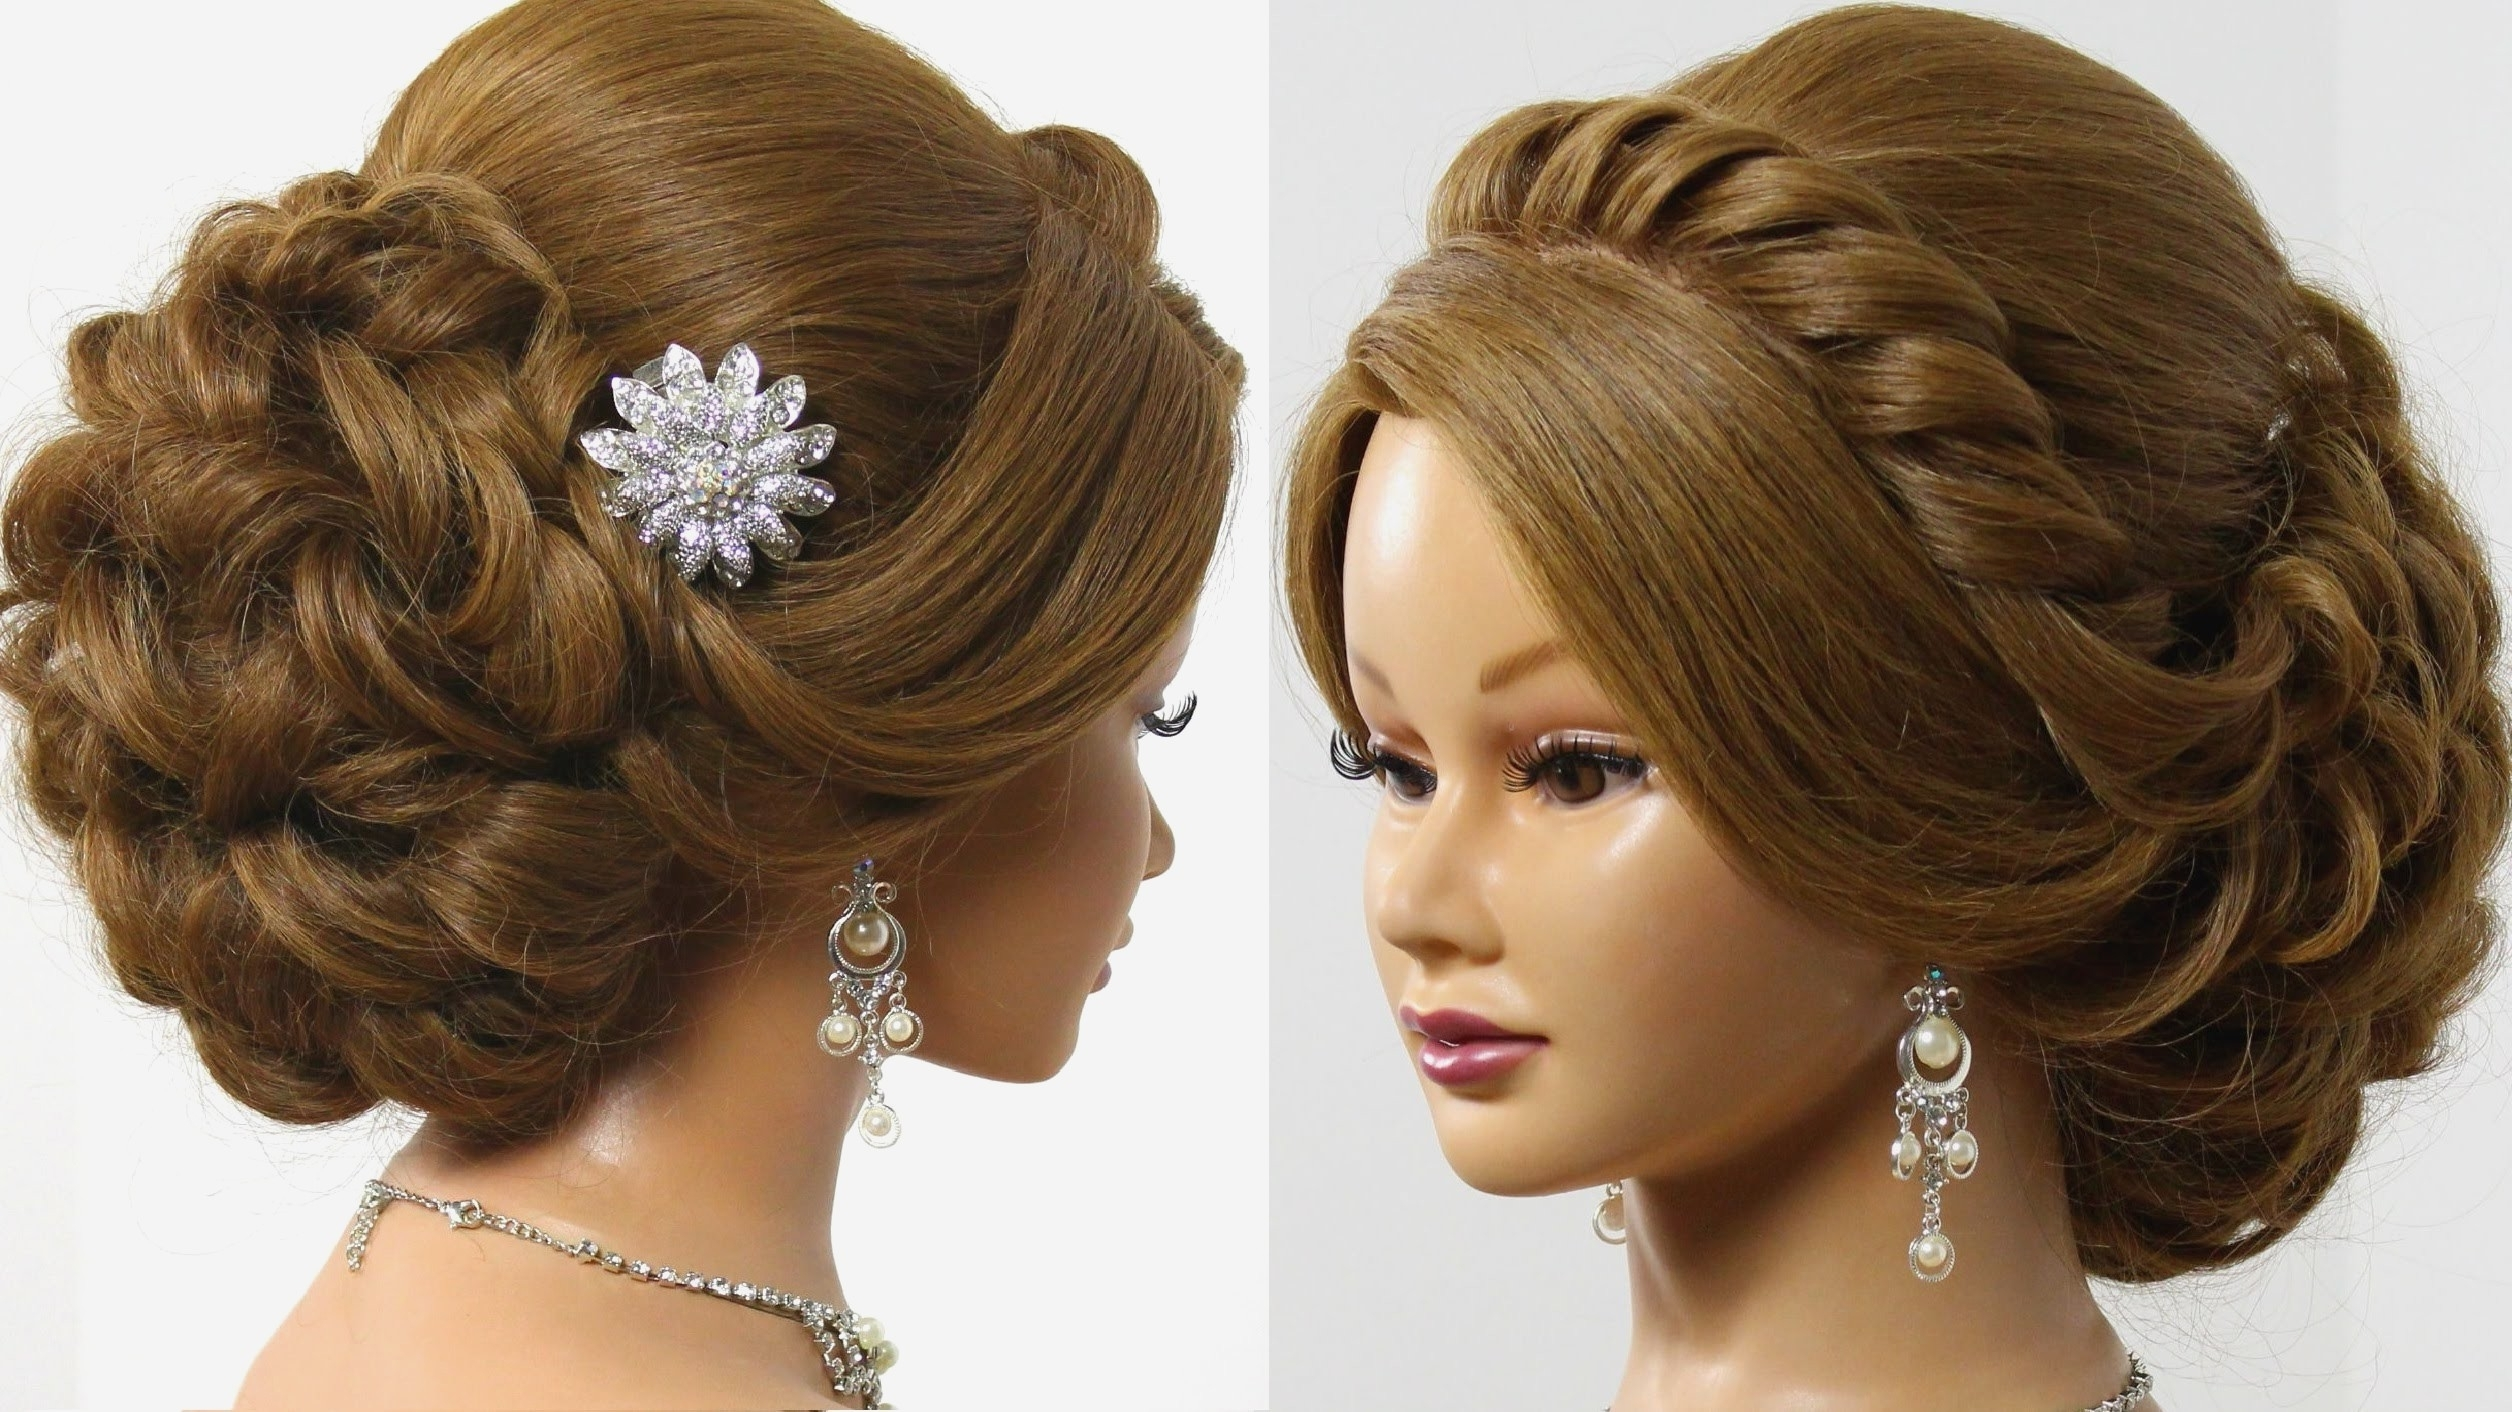 Well Liked Braided Updo Hairstyles For Weddings In Page 60 Of Braid Hairstyles Category : Wedding Braided Updo (View 13 of 15)